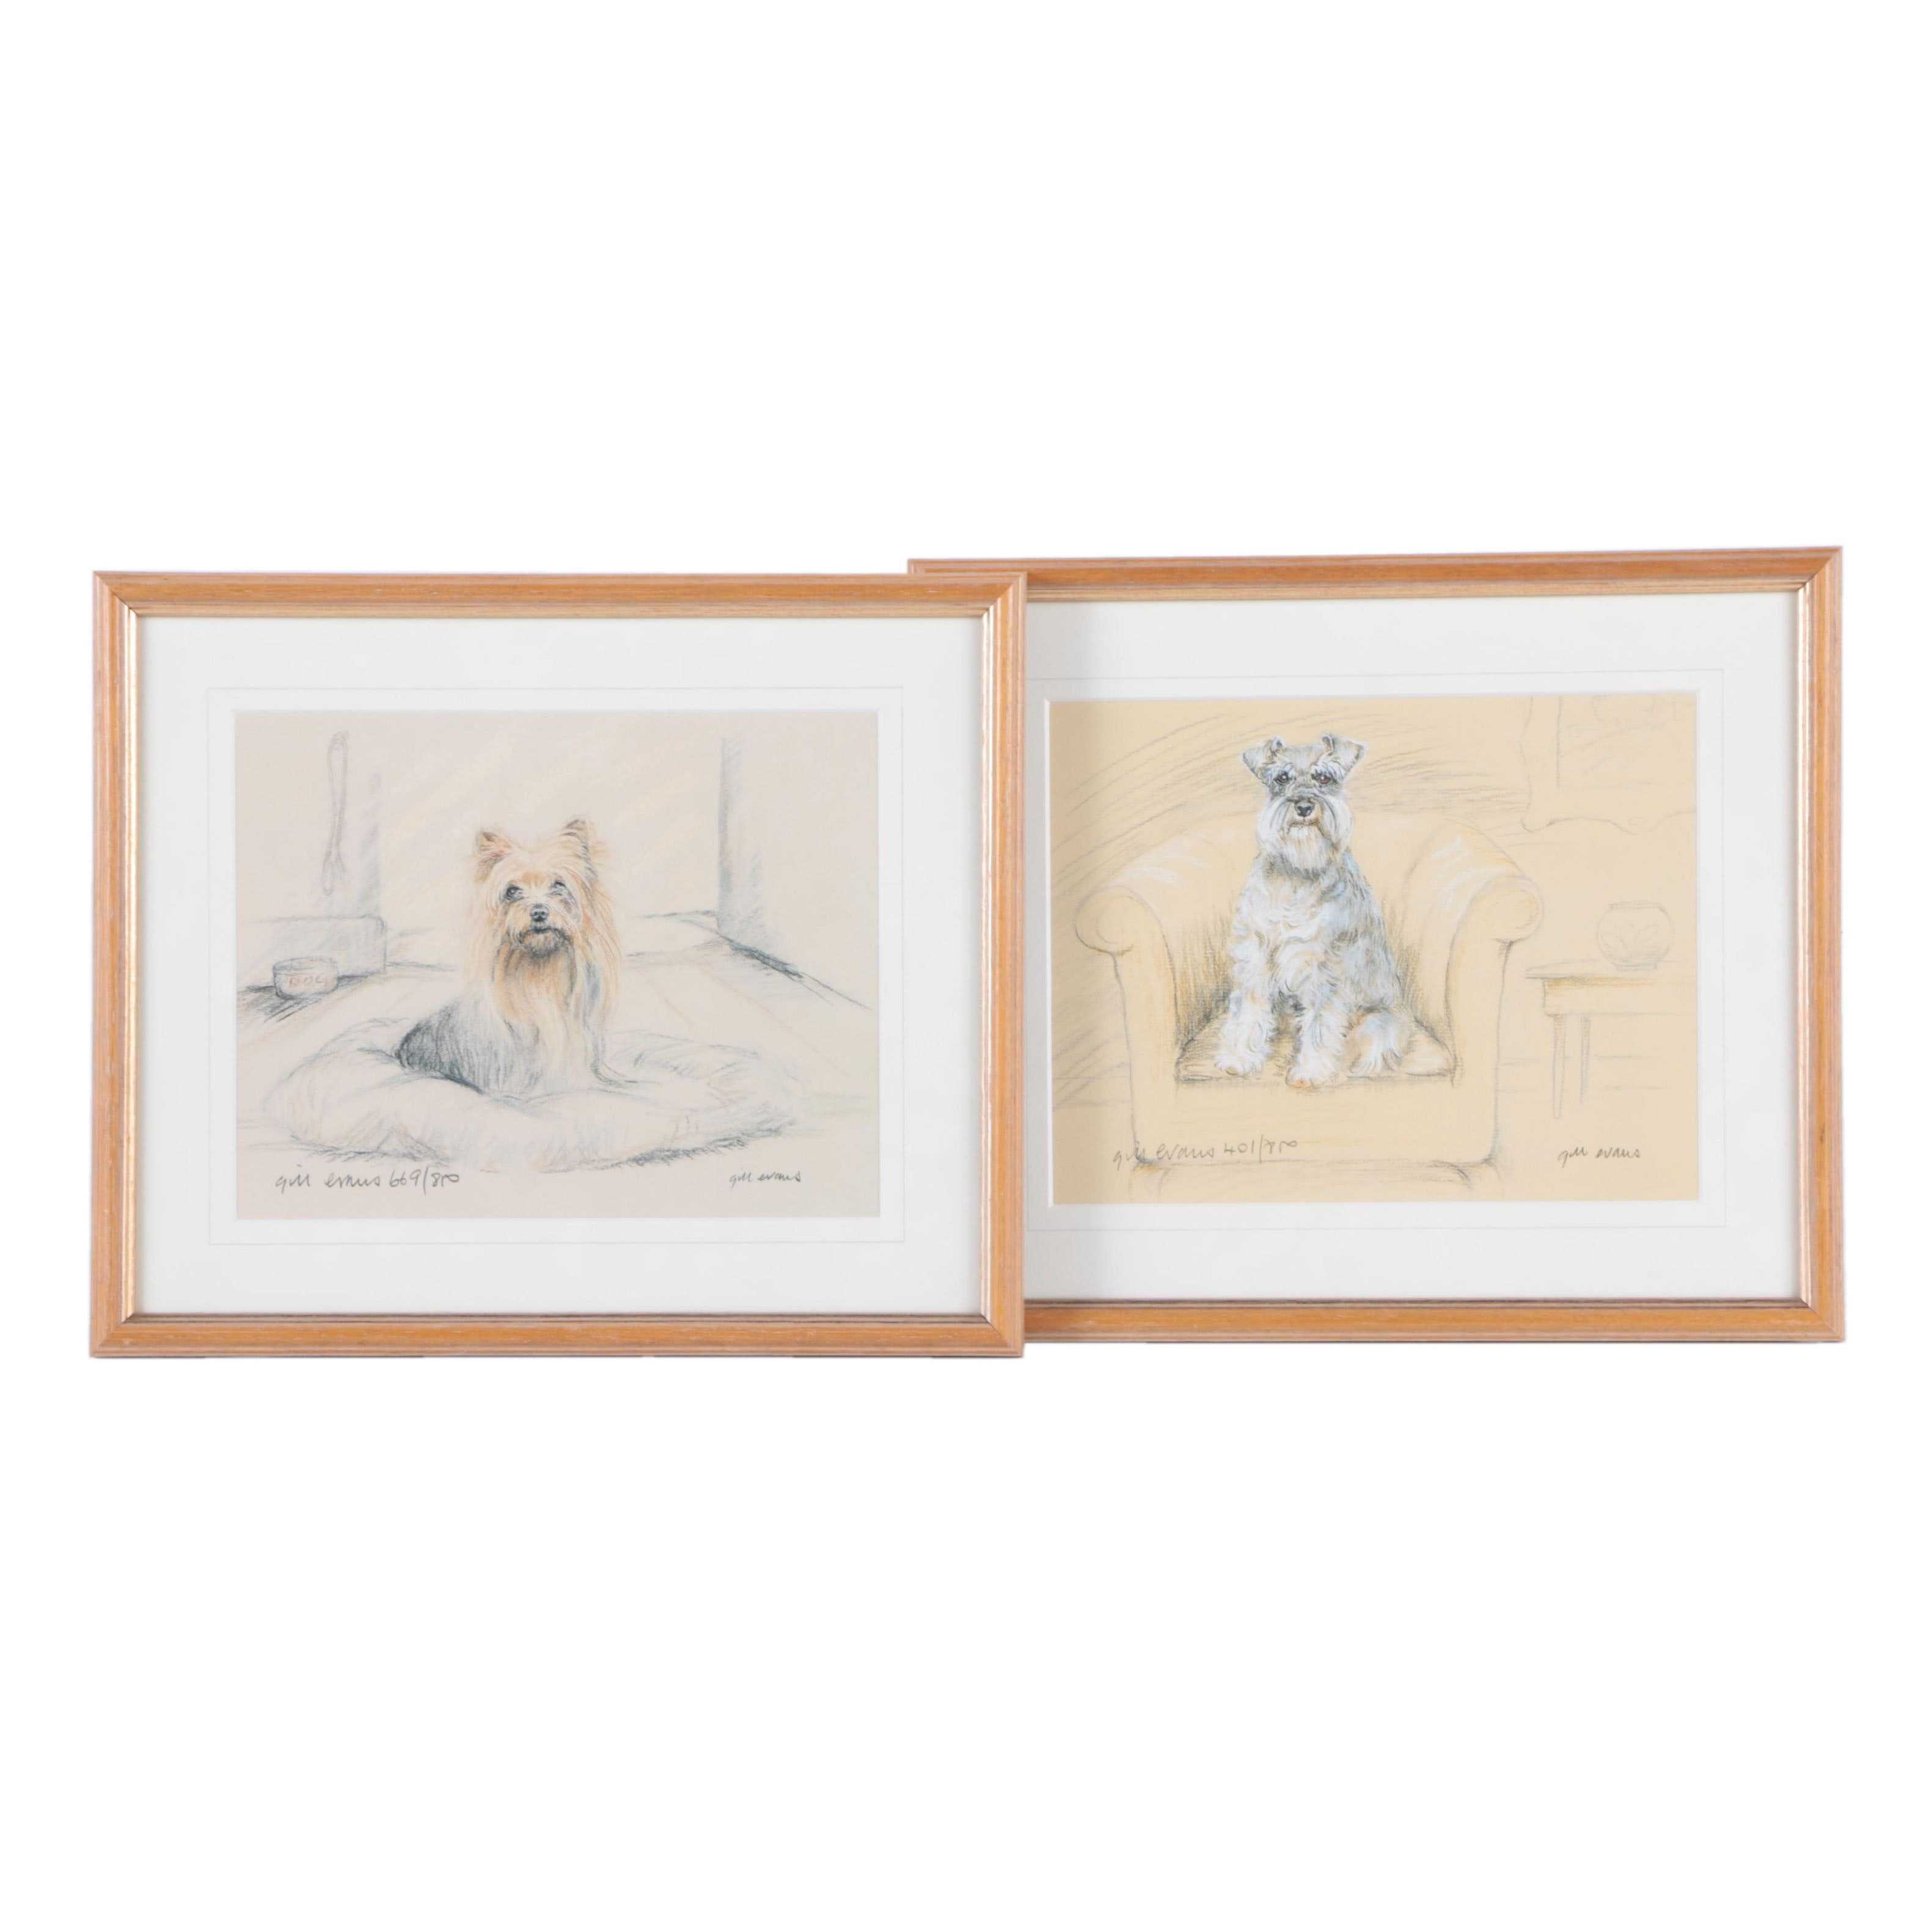 Gill Evans Limited Edition Offset Lithographs of Dogs